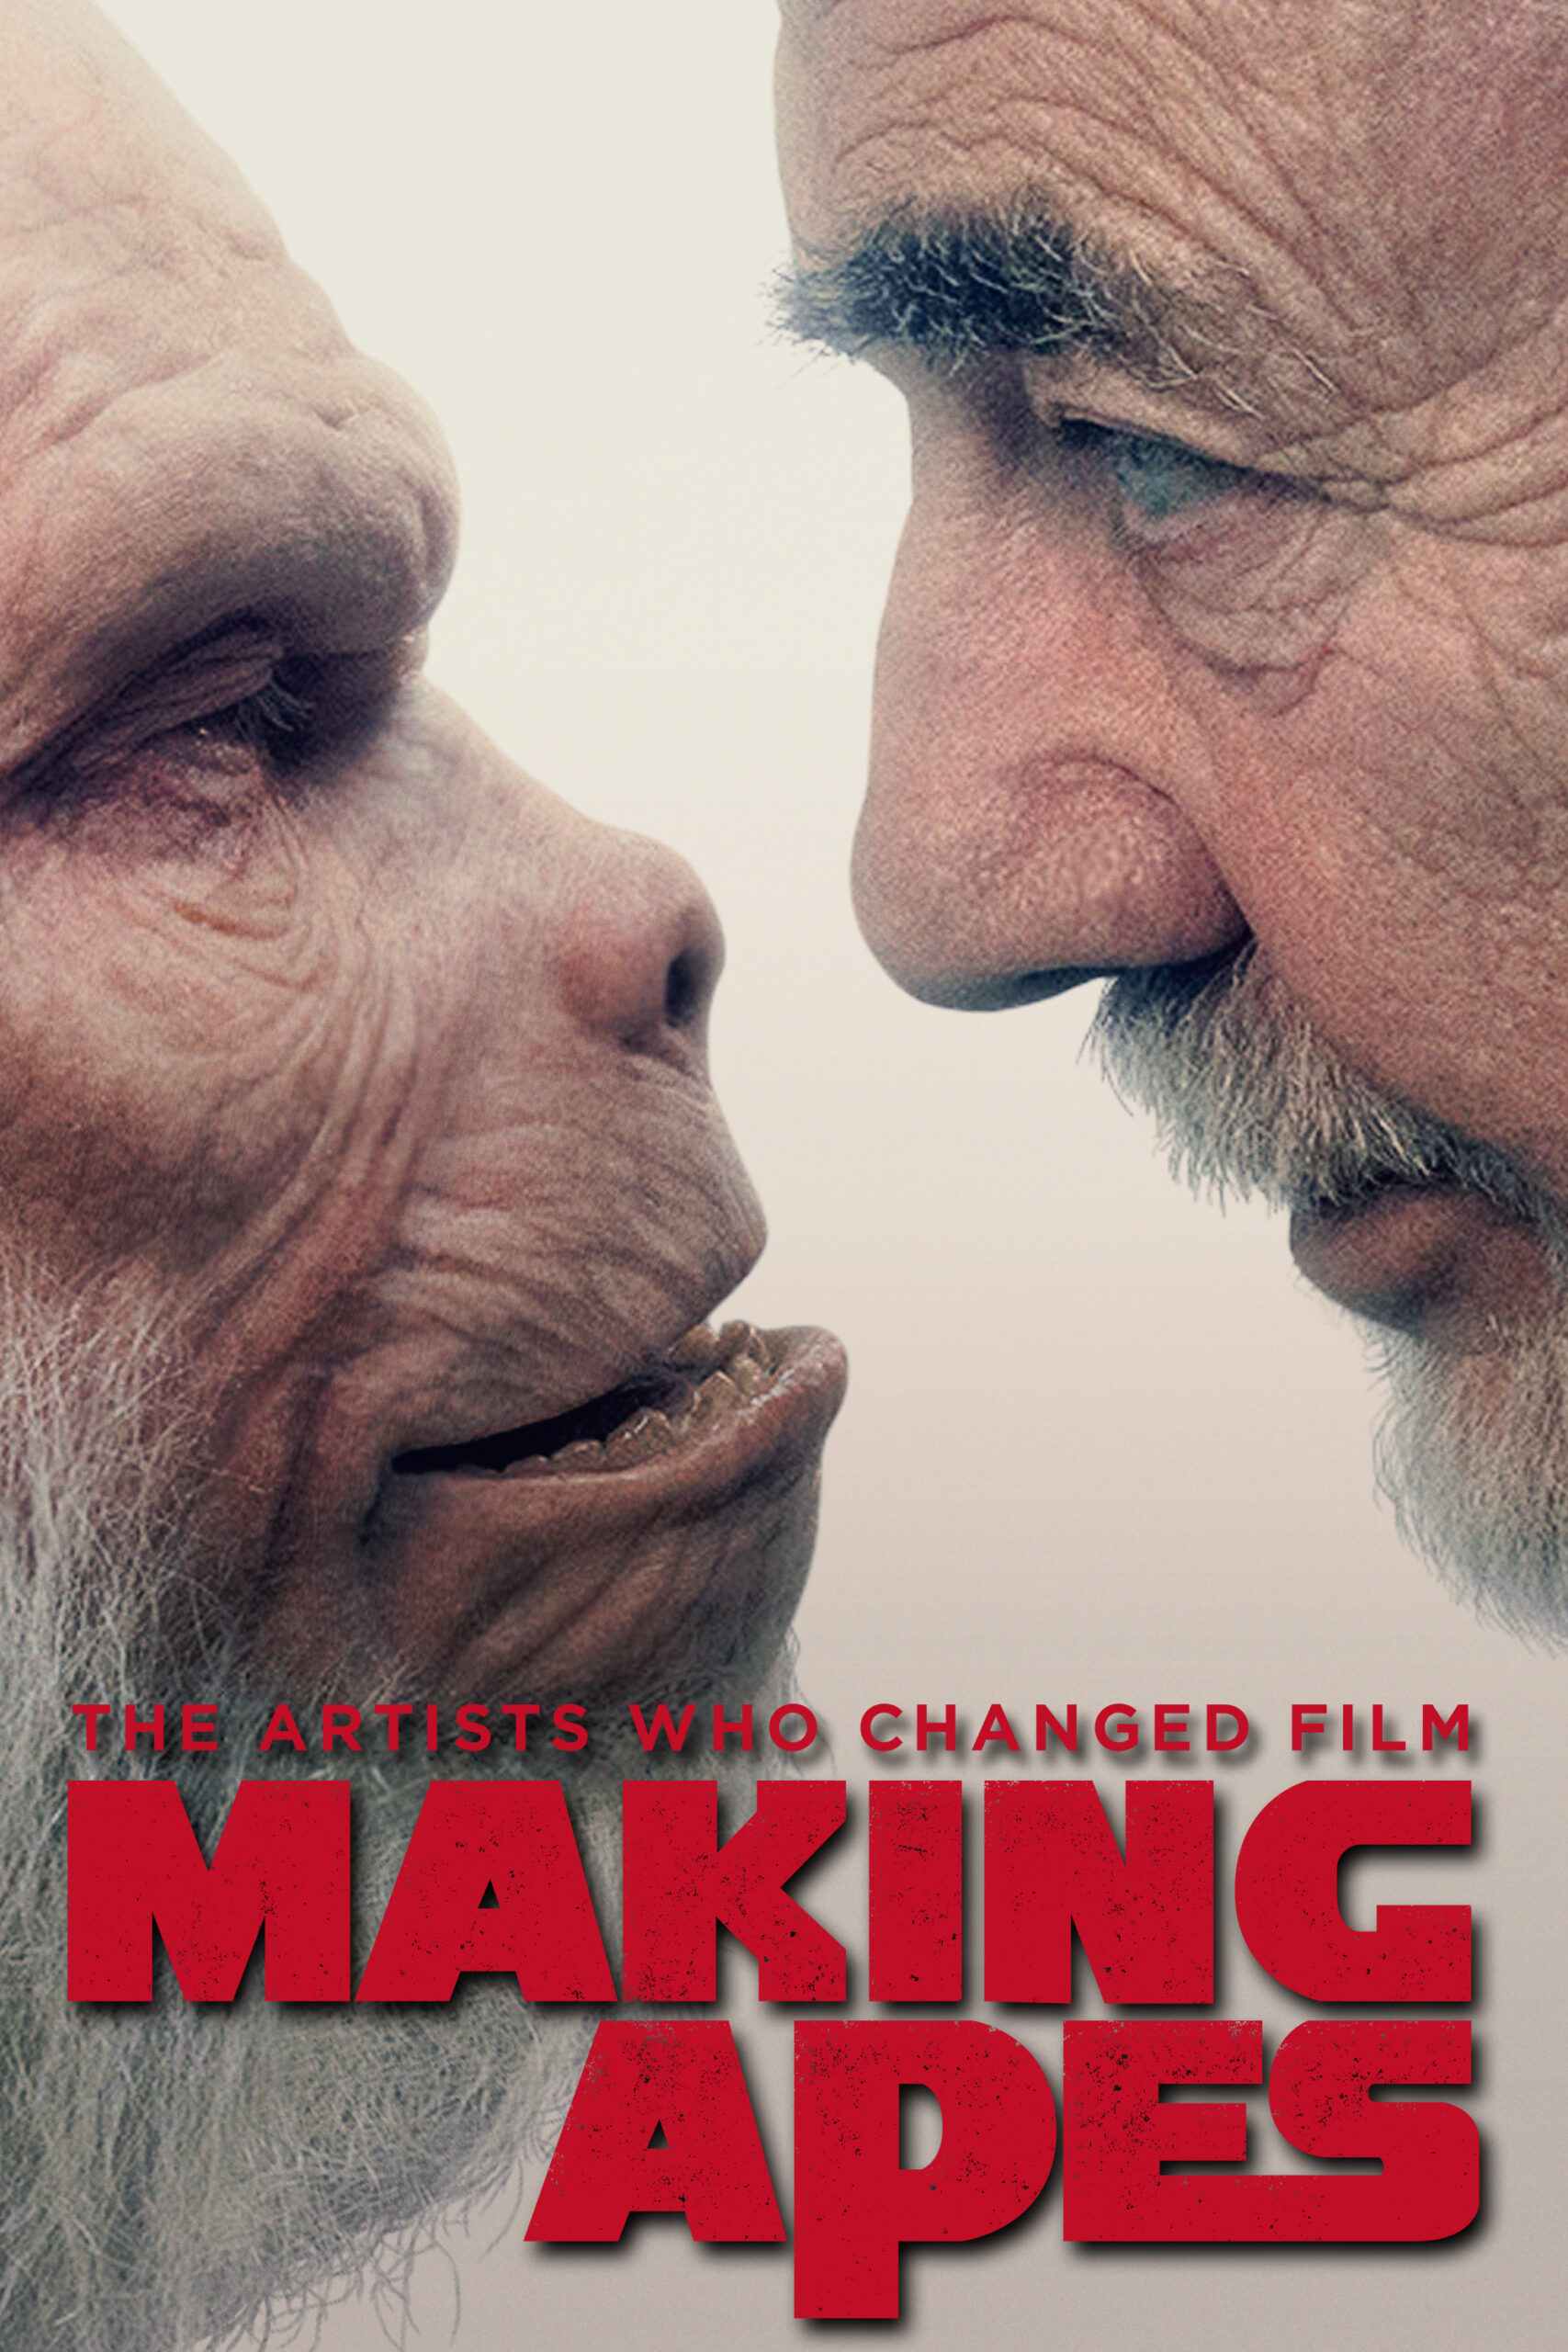 Film Review: MAKING APES: THE ARTISTS WHO CHANGED FILM (2019)